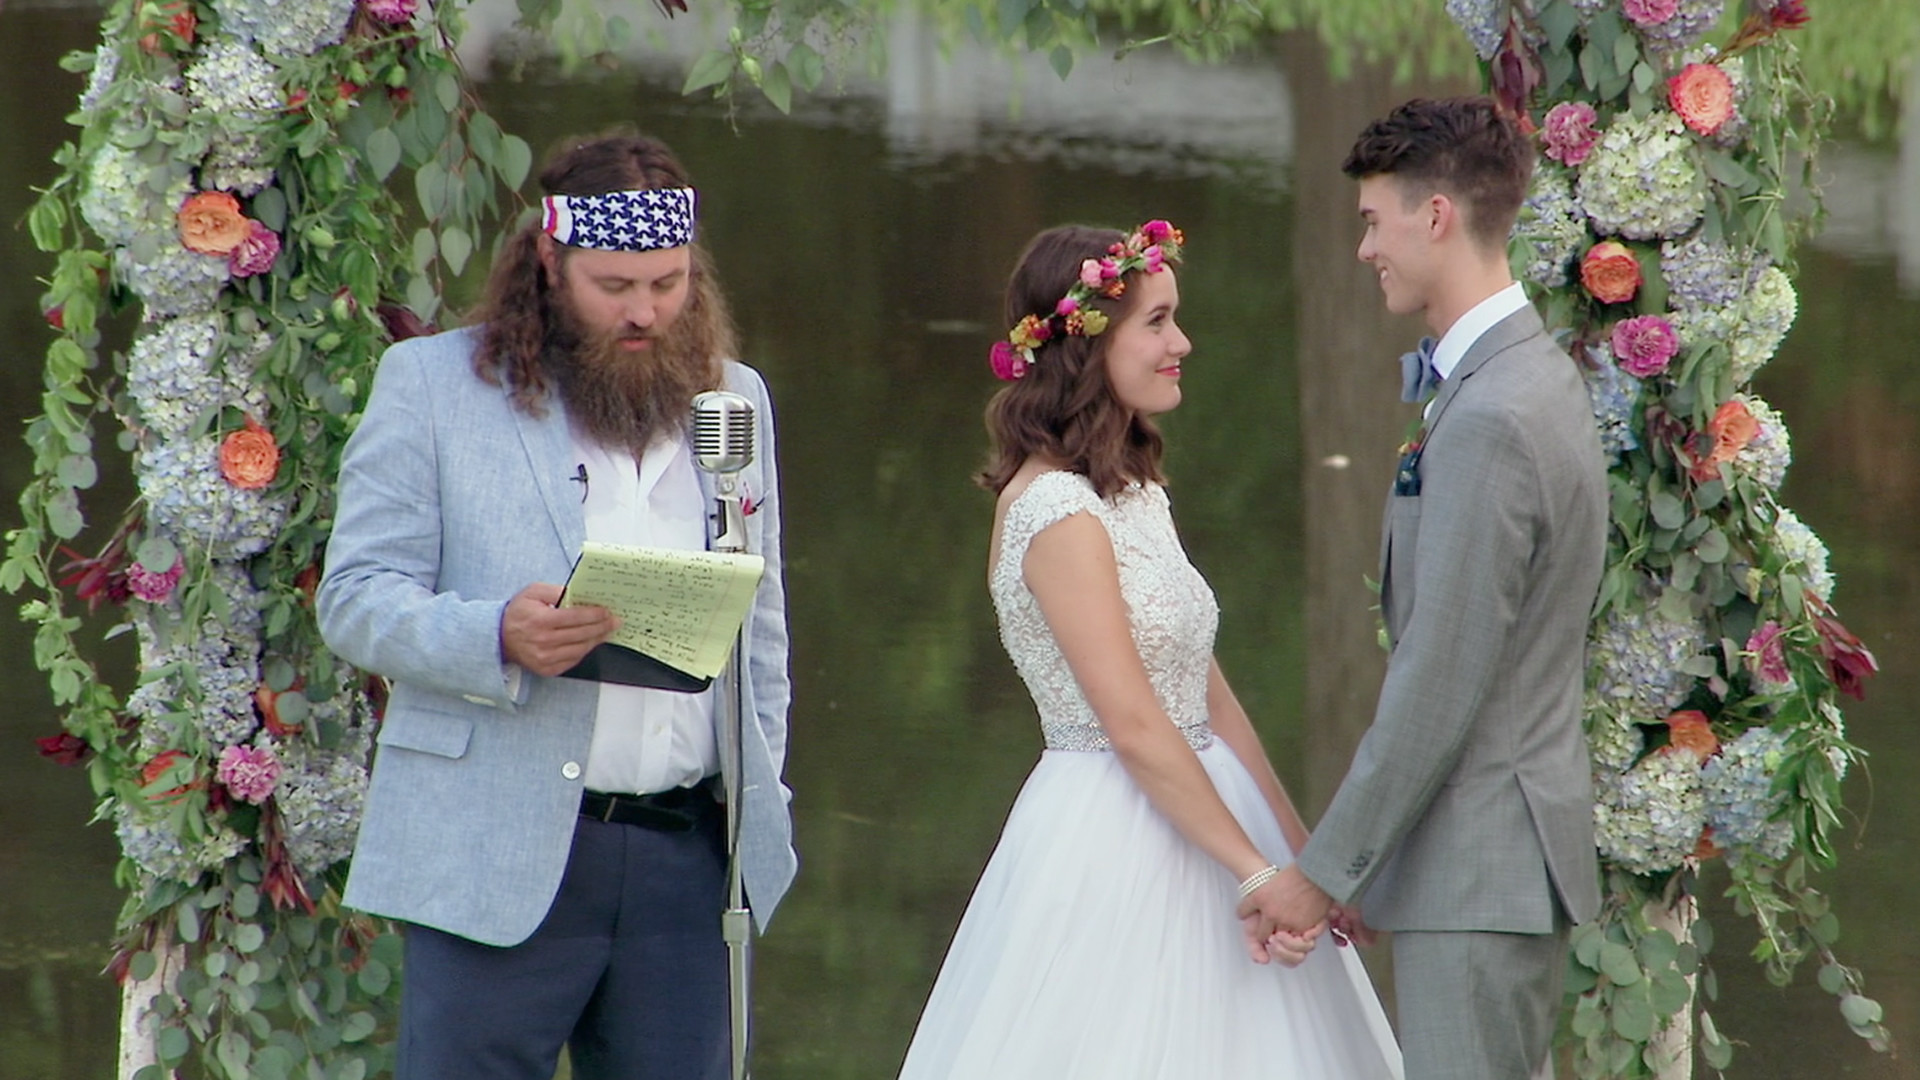 Res: 1920x1080, Image result for duck dynasty